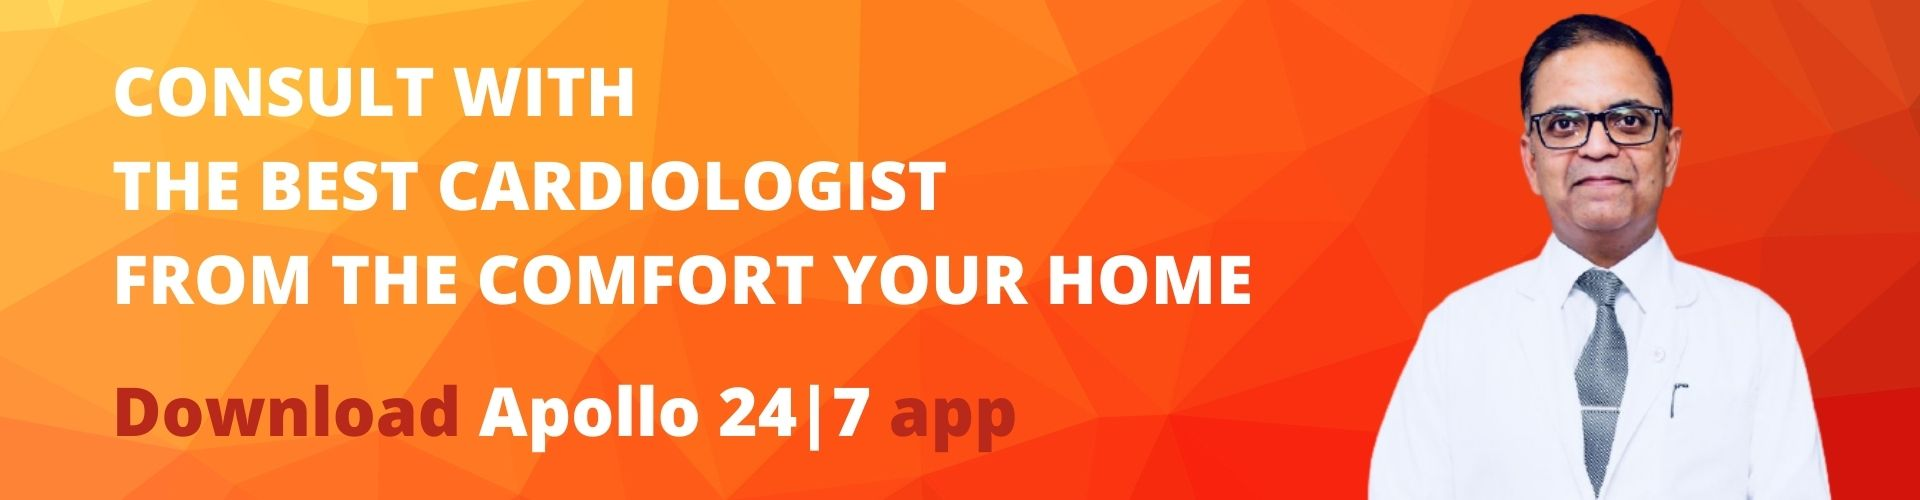 CONSULT WITH THE BEST CARDIOLOGIST FROM THE COMFORT YOUR HOME (2)